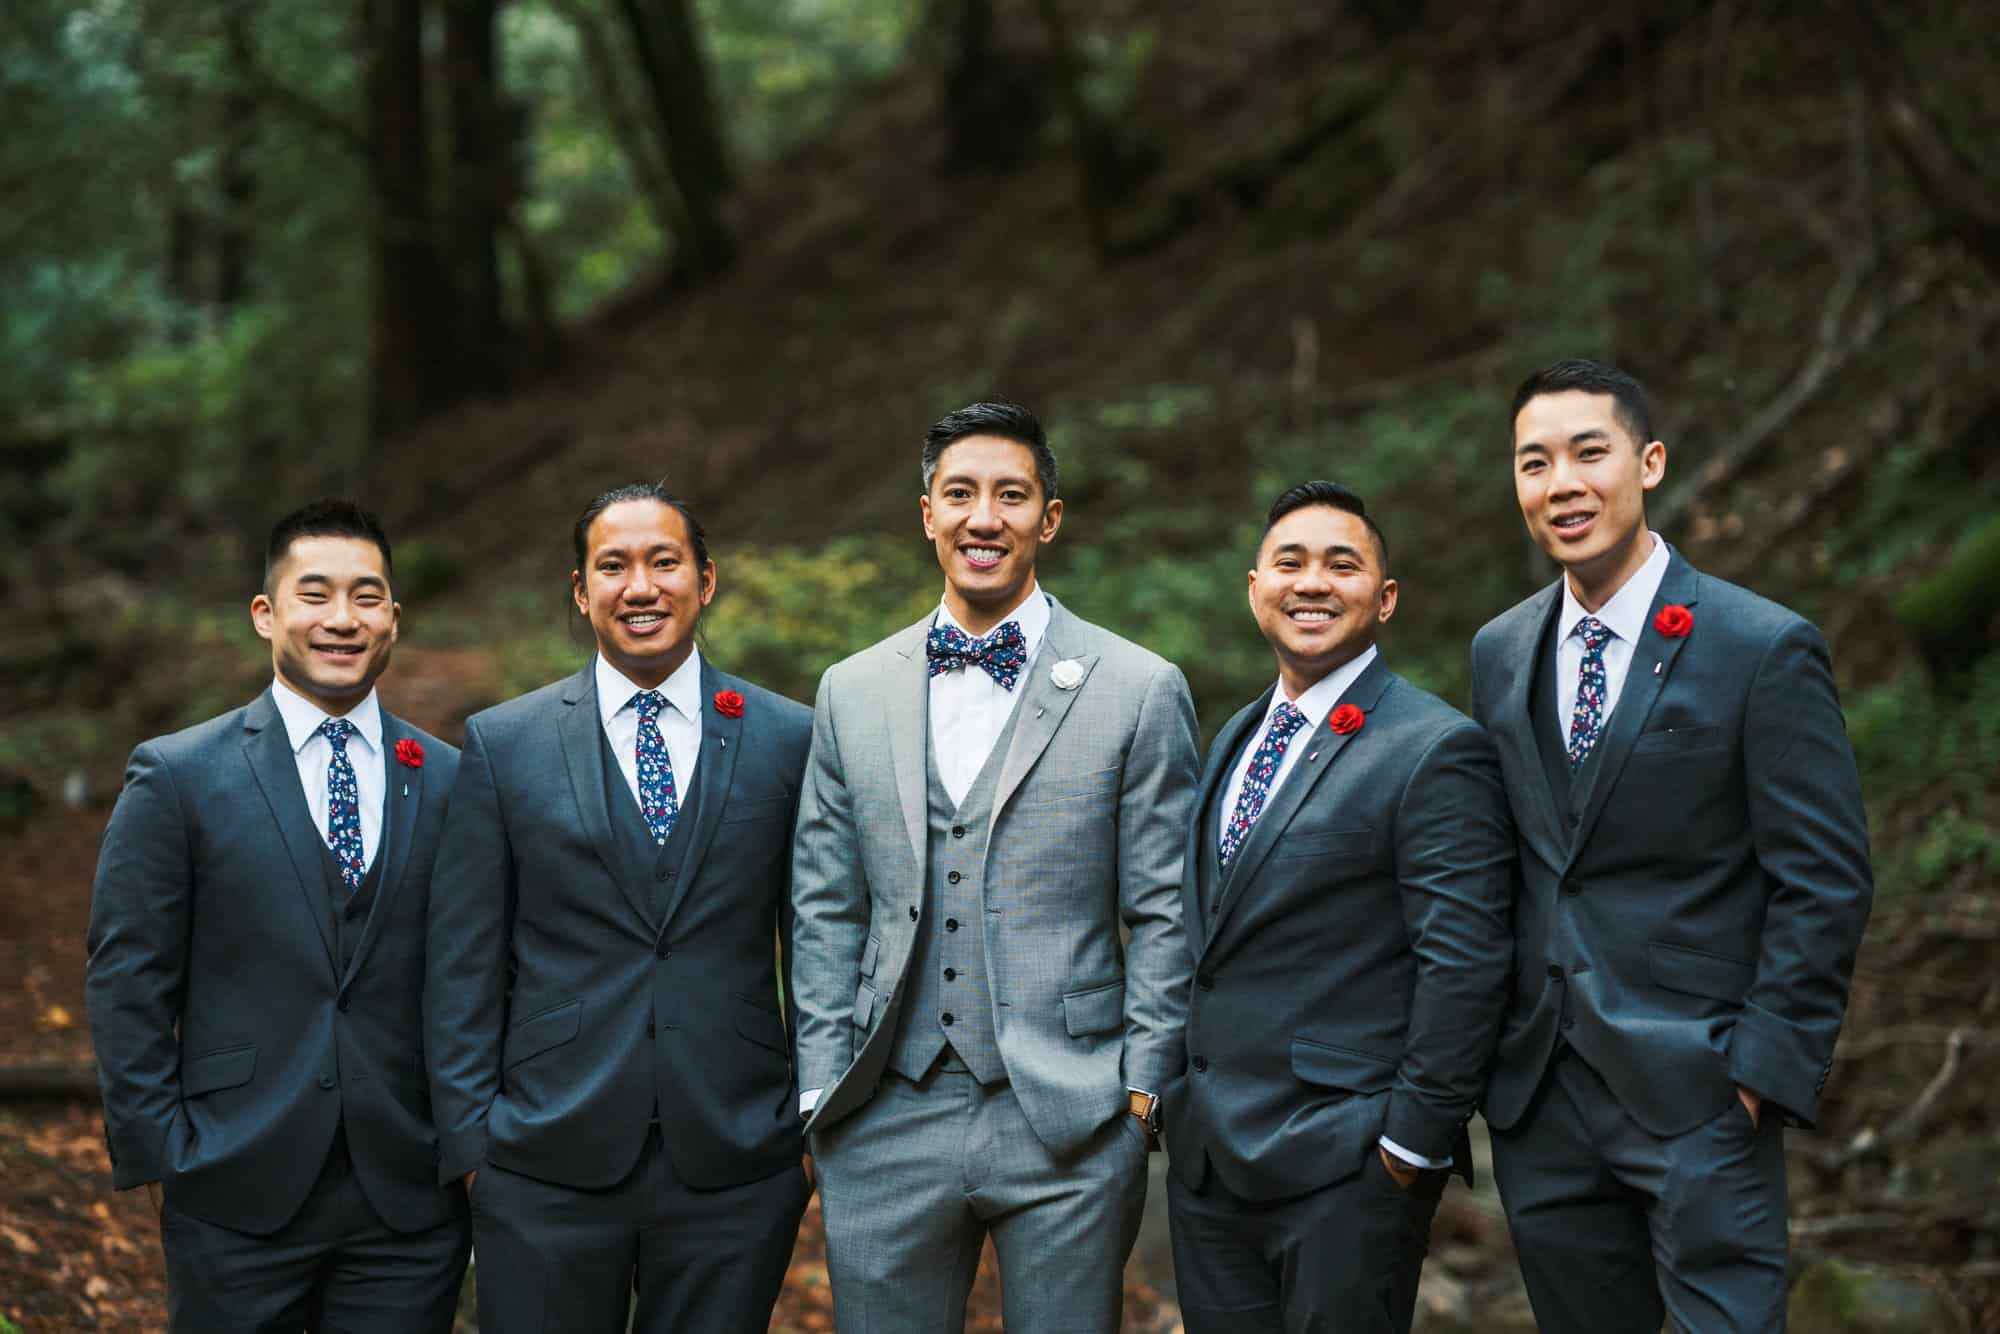 saratoga springs wedding groomsmen